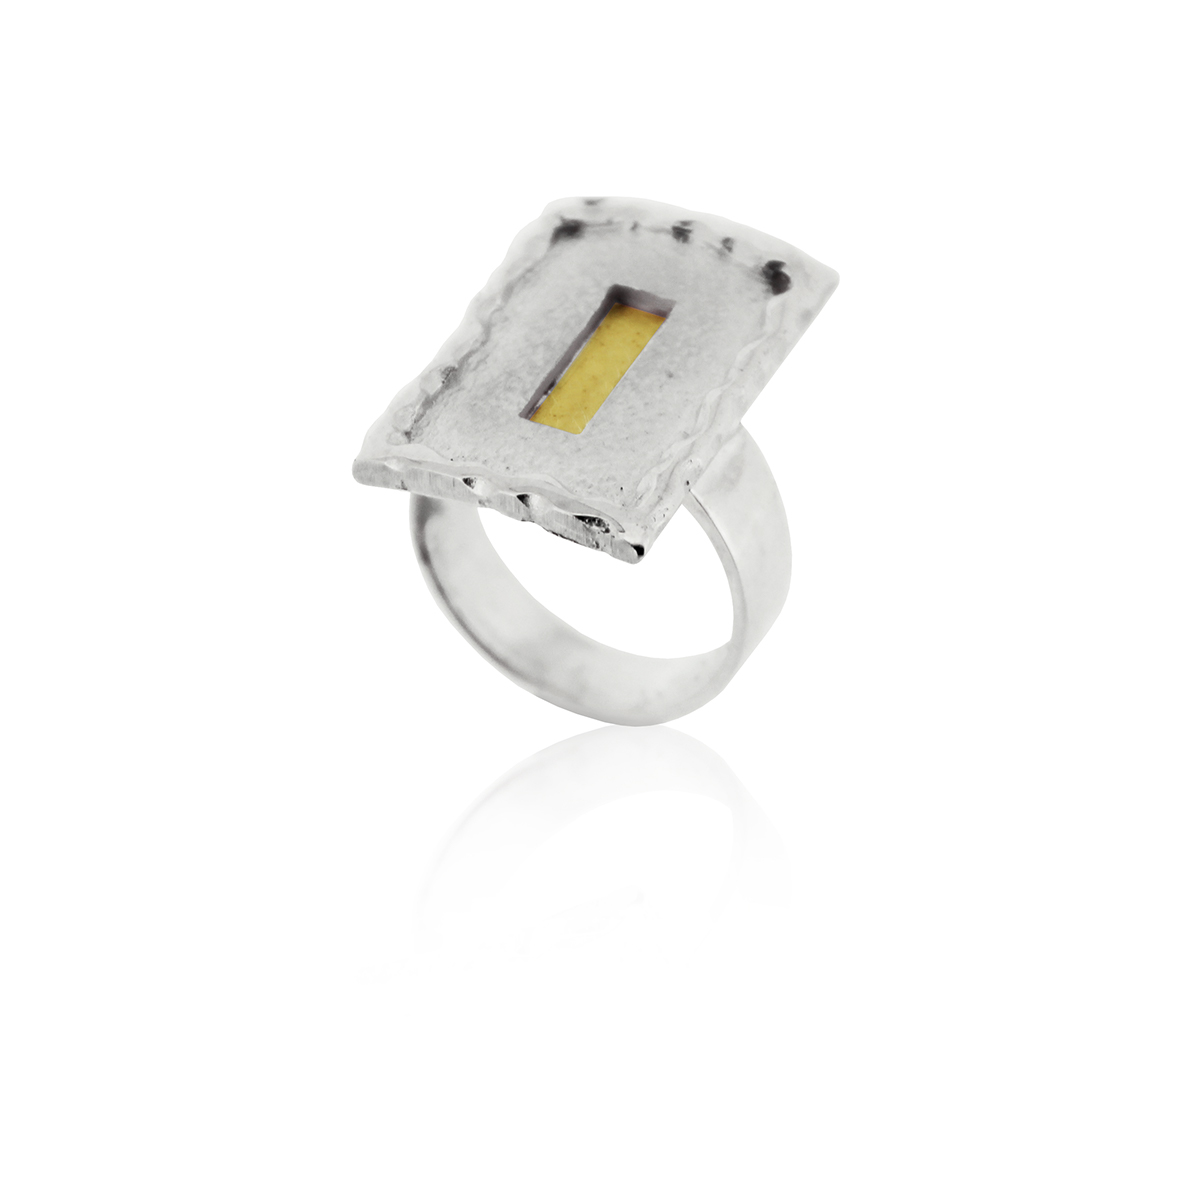 ANELL PLATA I OR. R1874XL